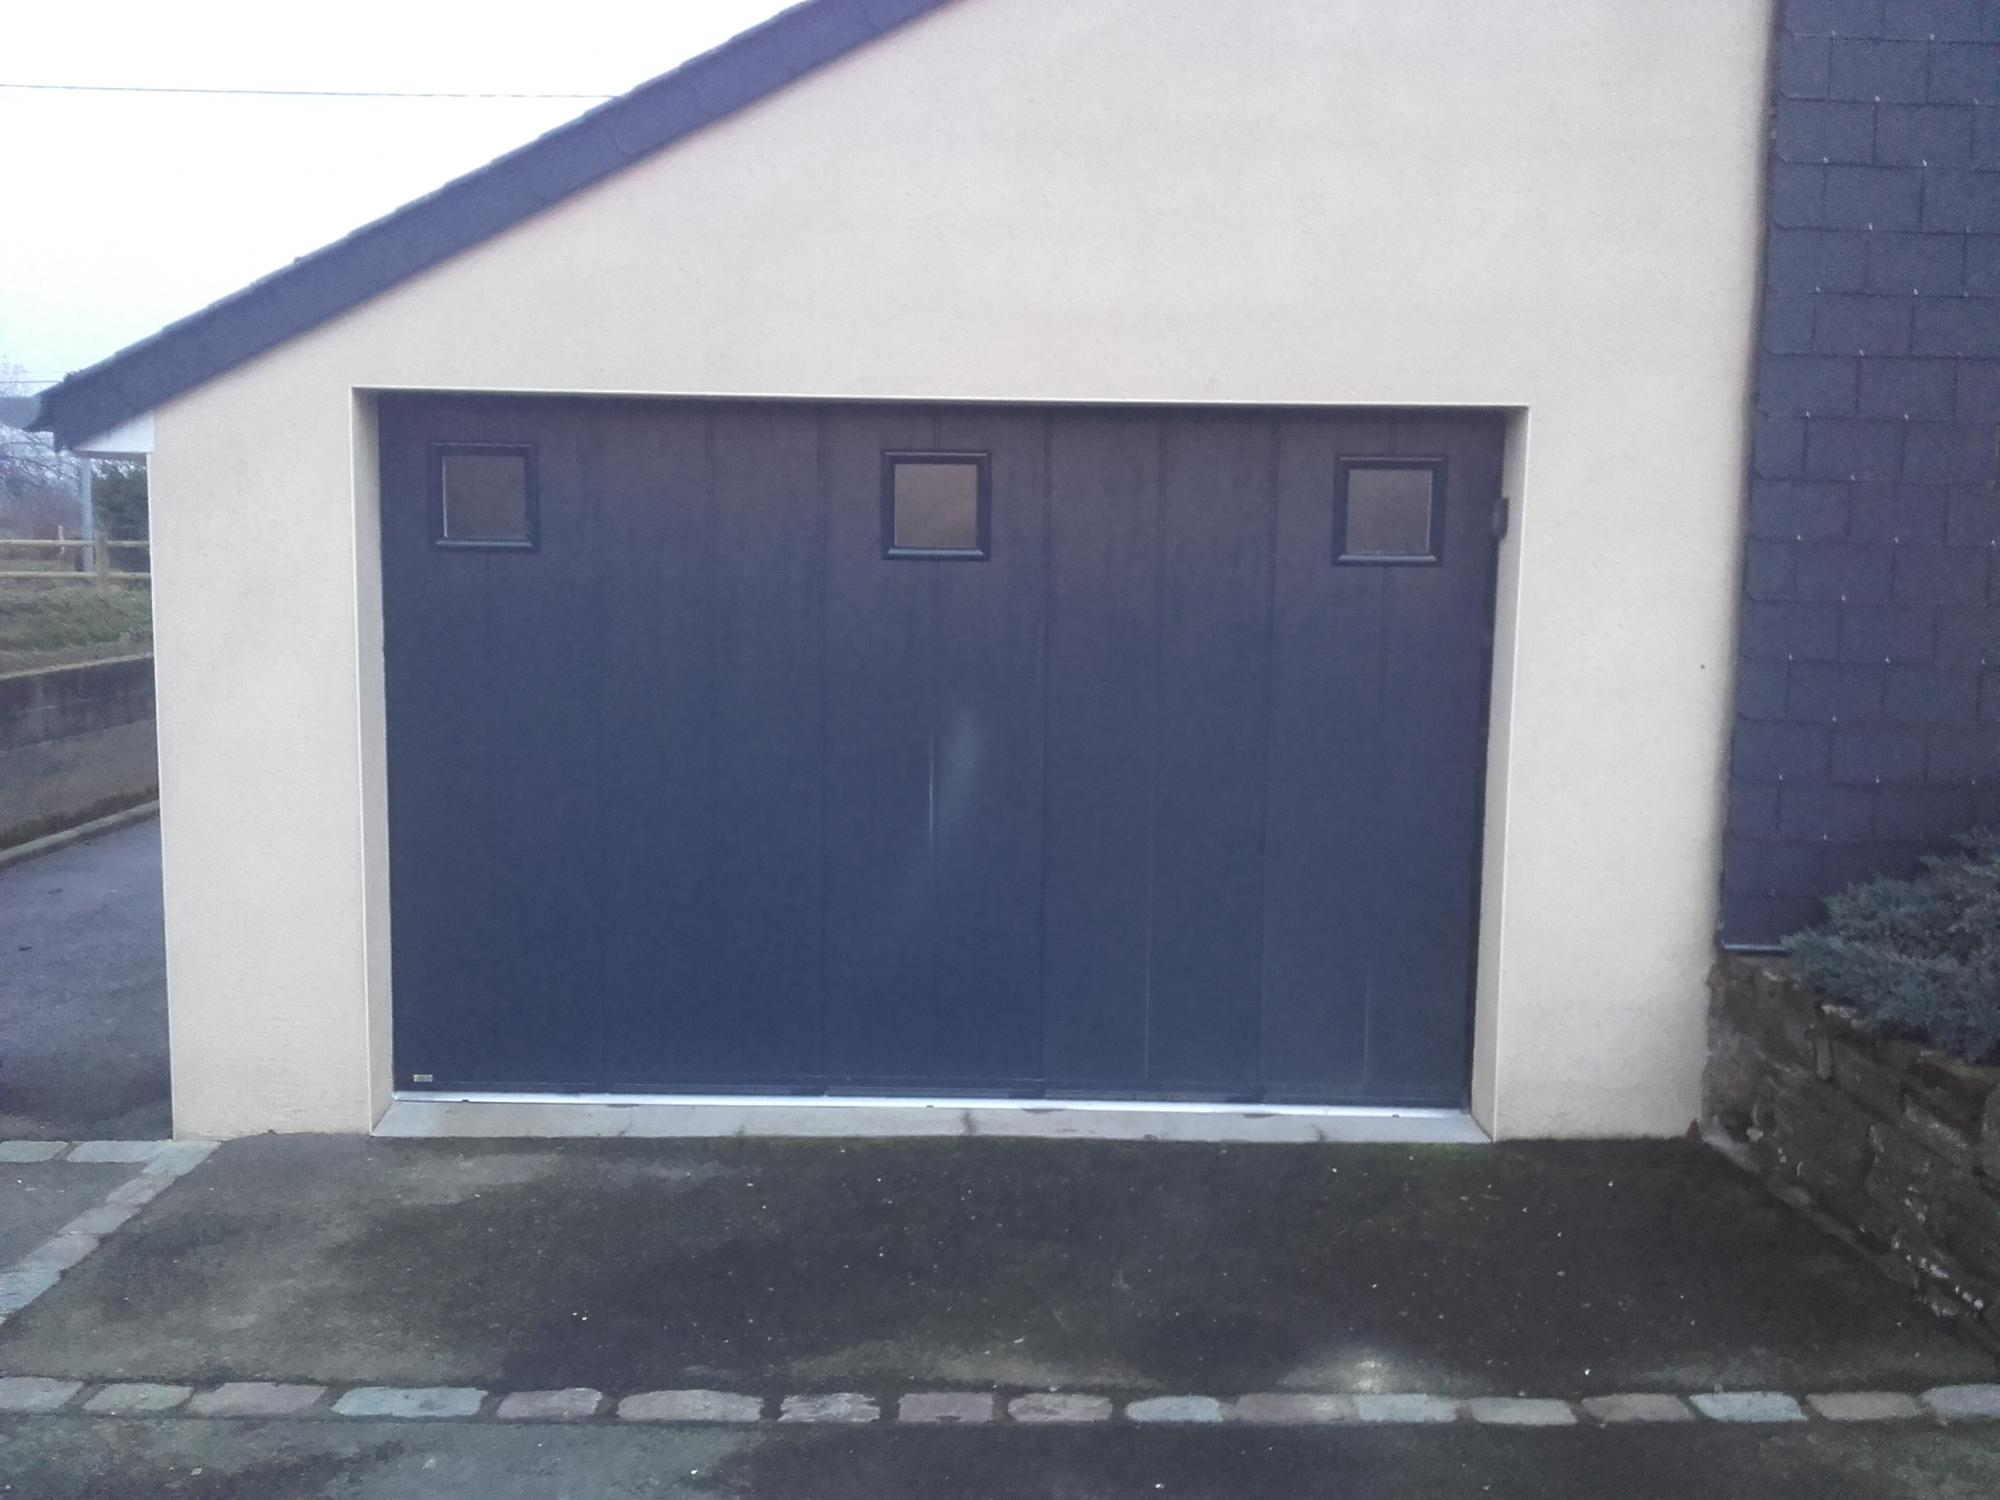 Porte de garage lat rale avec hublots pvc installation for Porte garage ouverture laterale